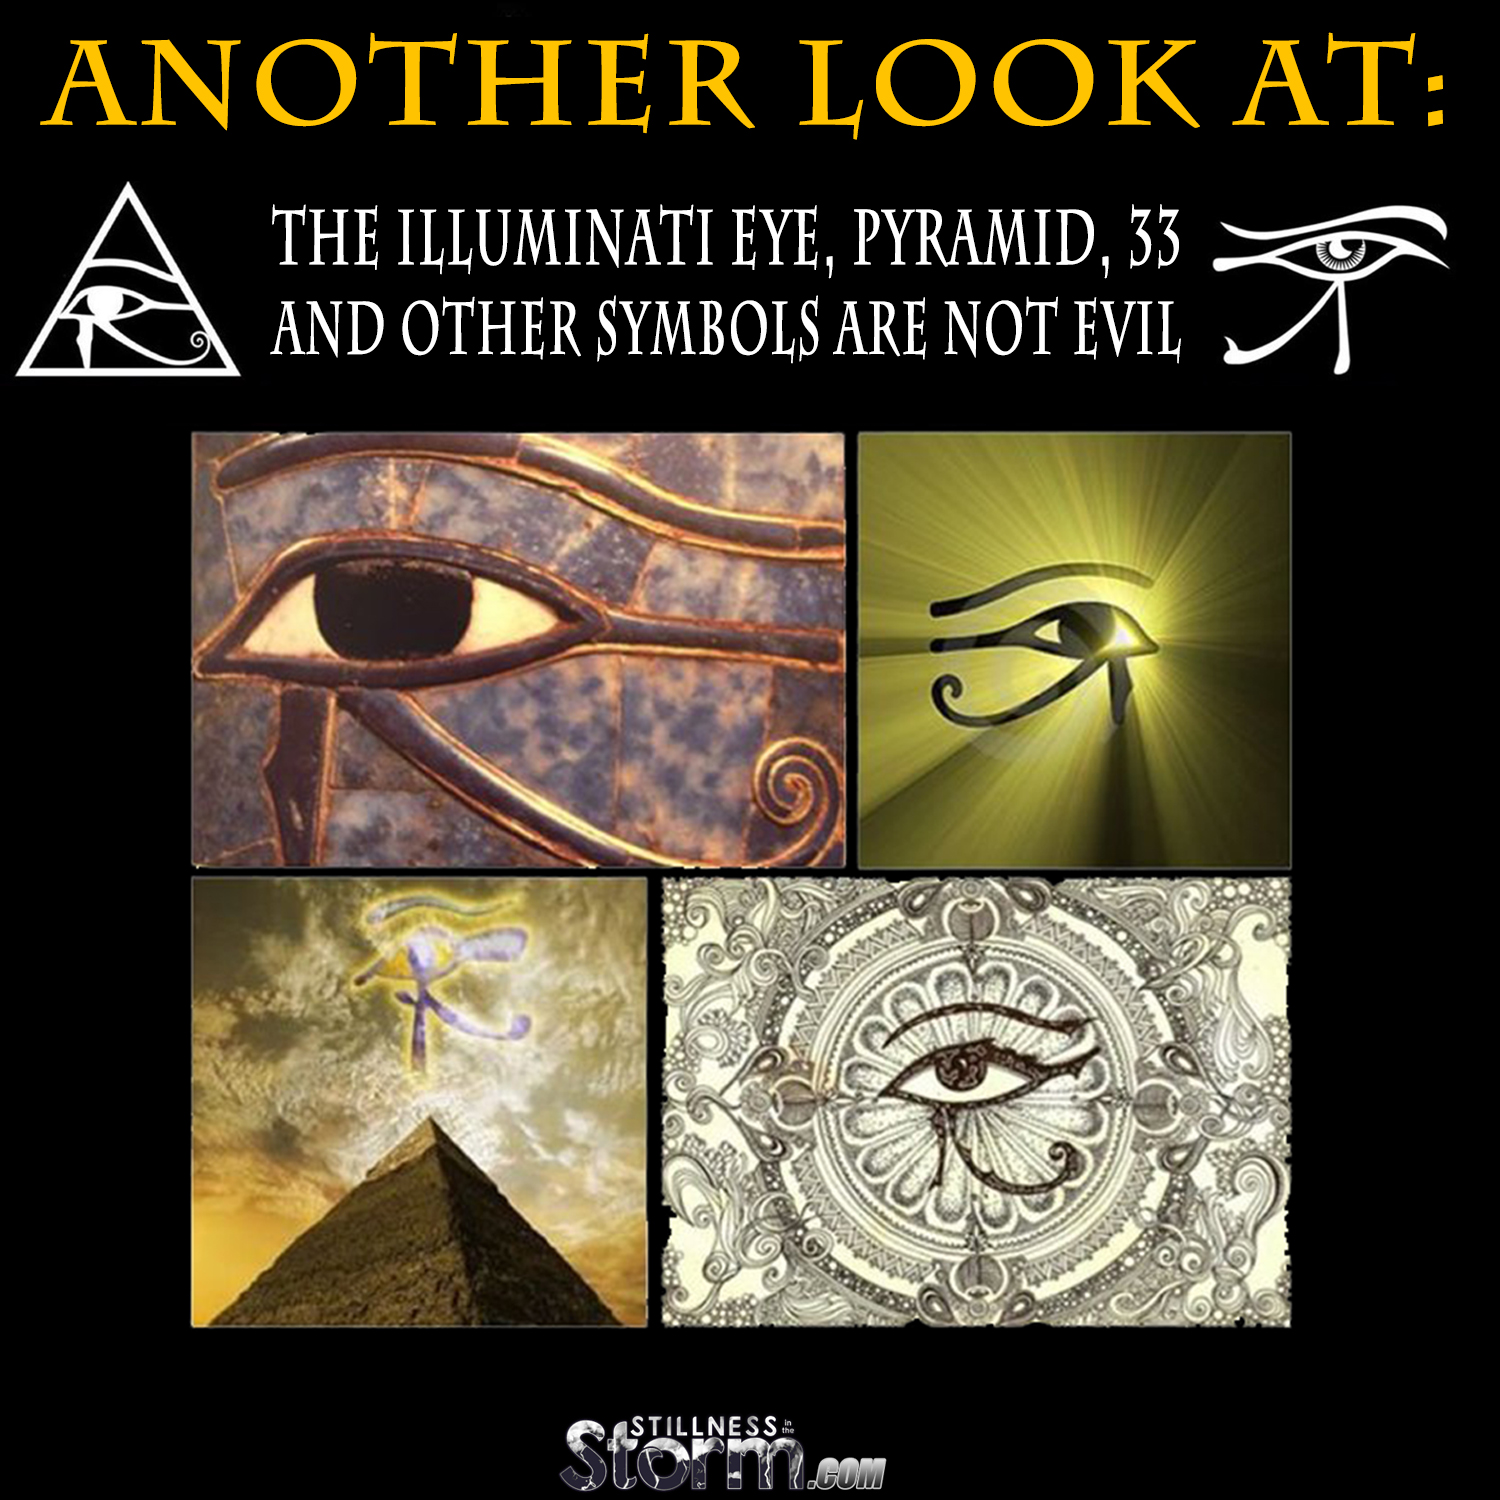 All On The Illuminati: Another Look At: The Illuminati Eye, Pyramid, 33, And